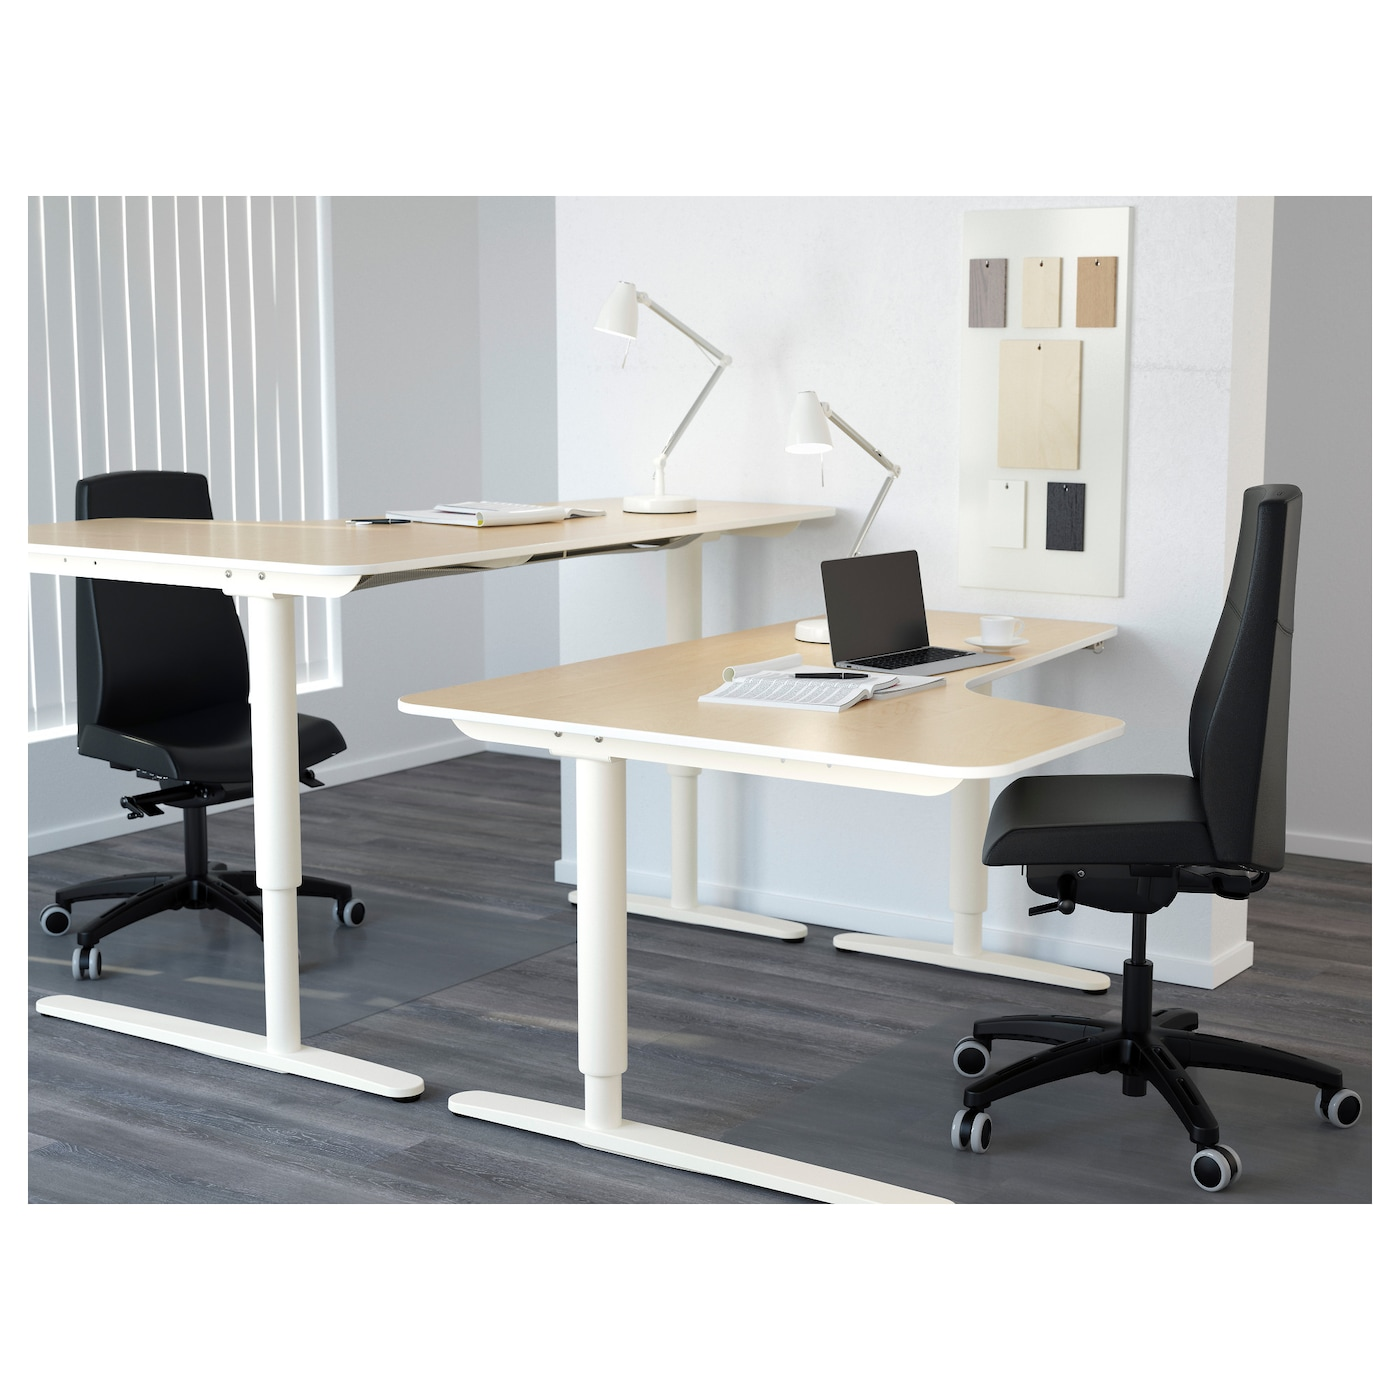 bekant corner desk right sit stand birch veneer white 160 x 110 cm ikea. Black Bedroom Furniture Sets. Home Design Ideas